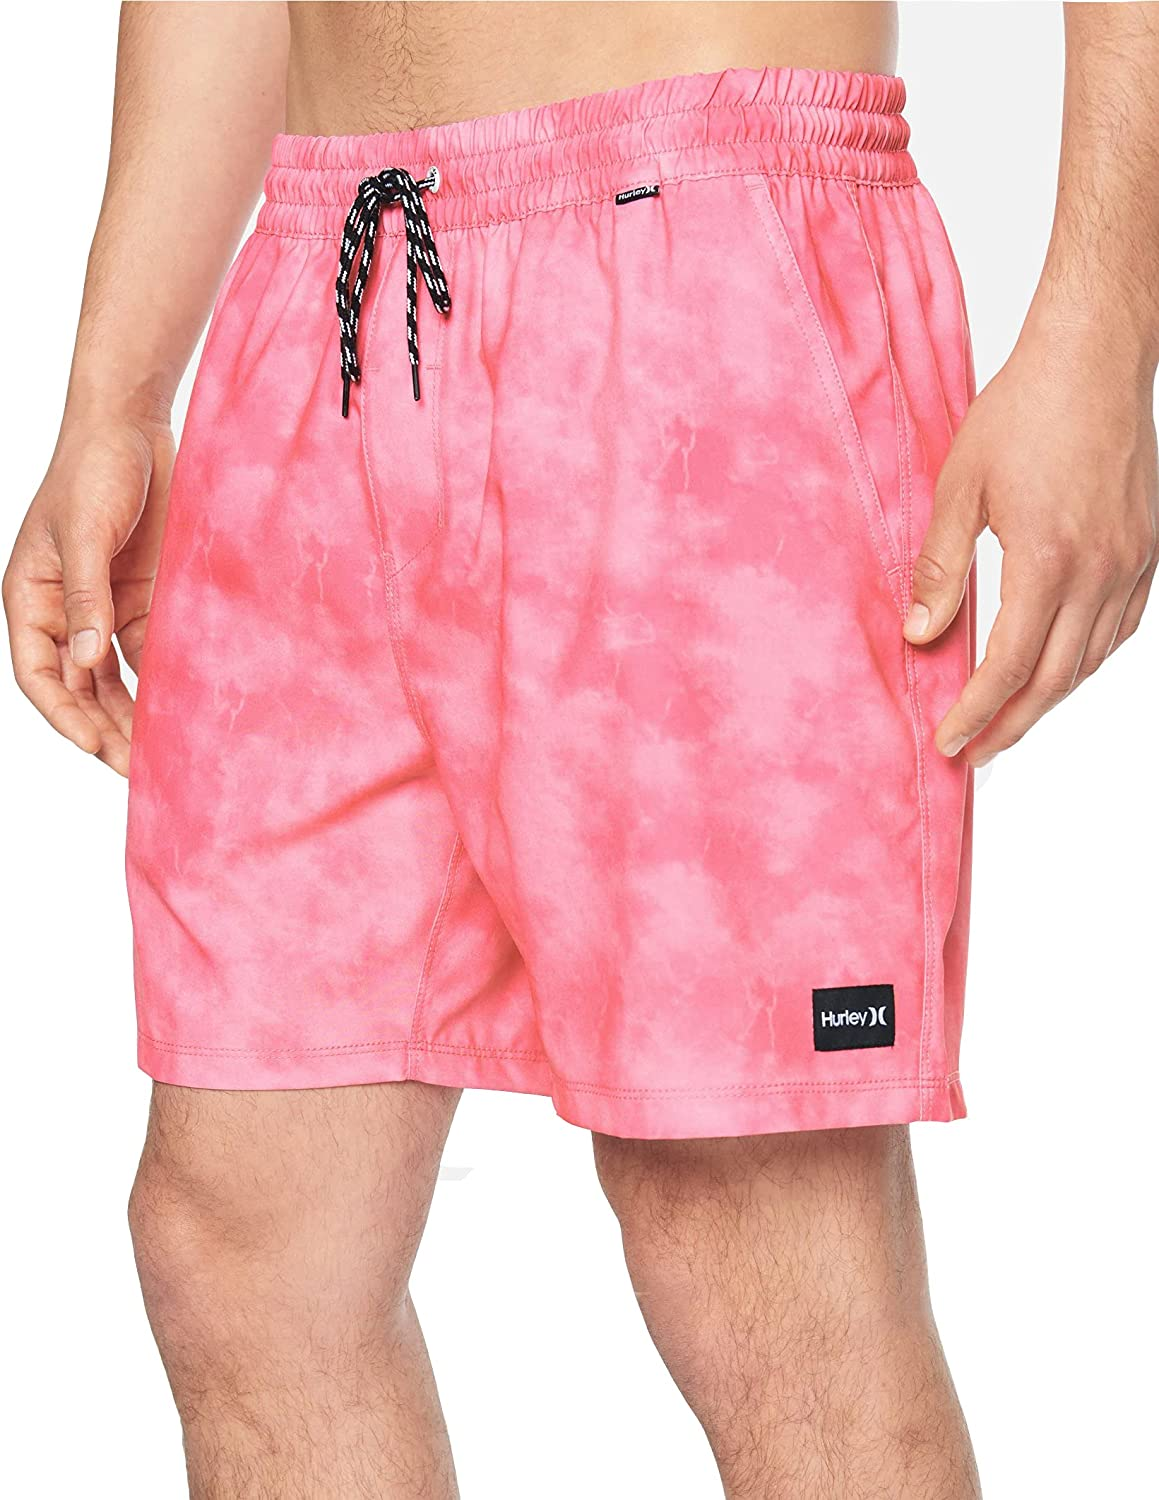 Hurley Men's Paradise Time sale Volley in. Rapid rise 17 Boardshorts